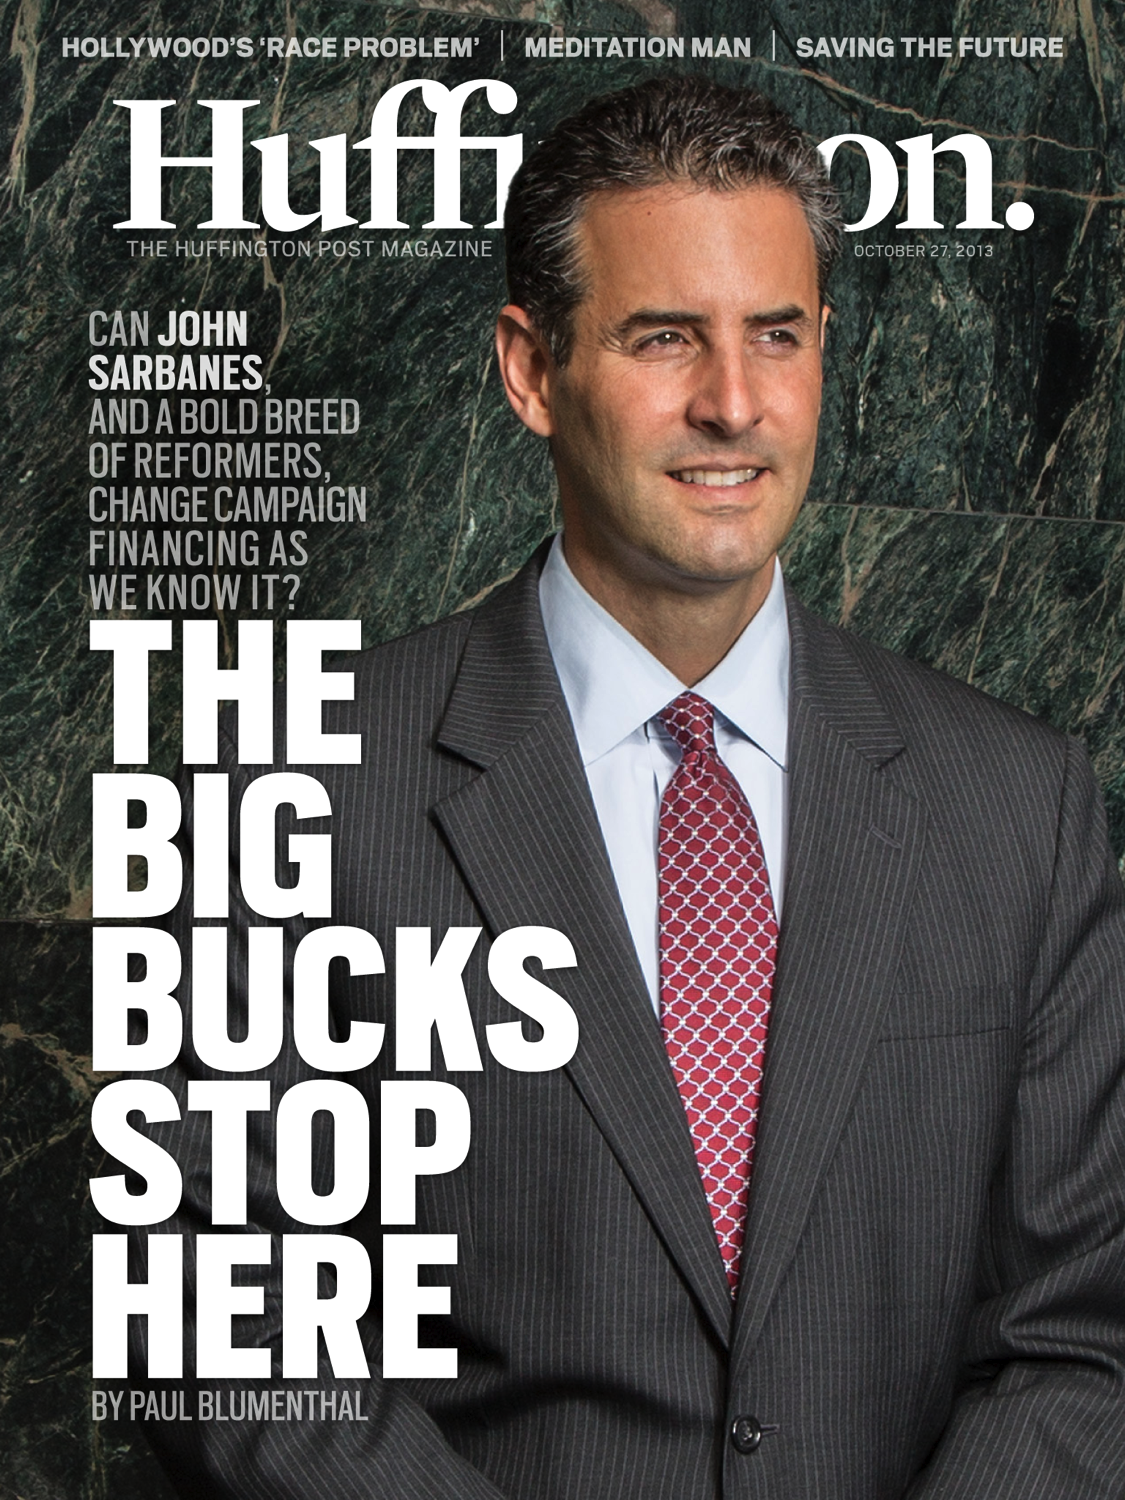 Huffington Post Profile of Sarbanes Campaign